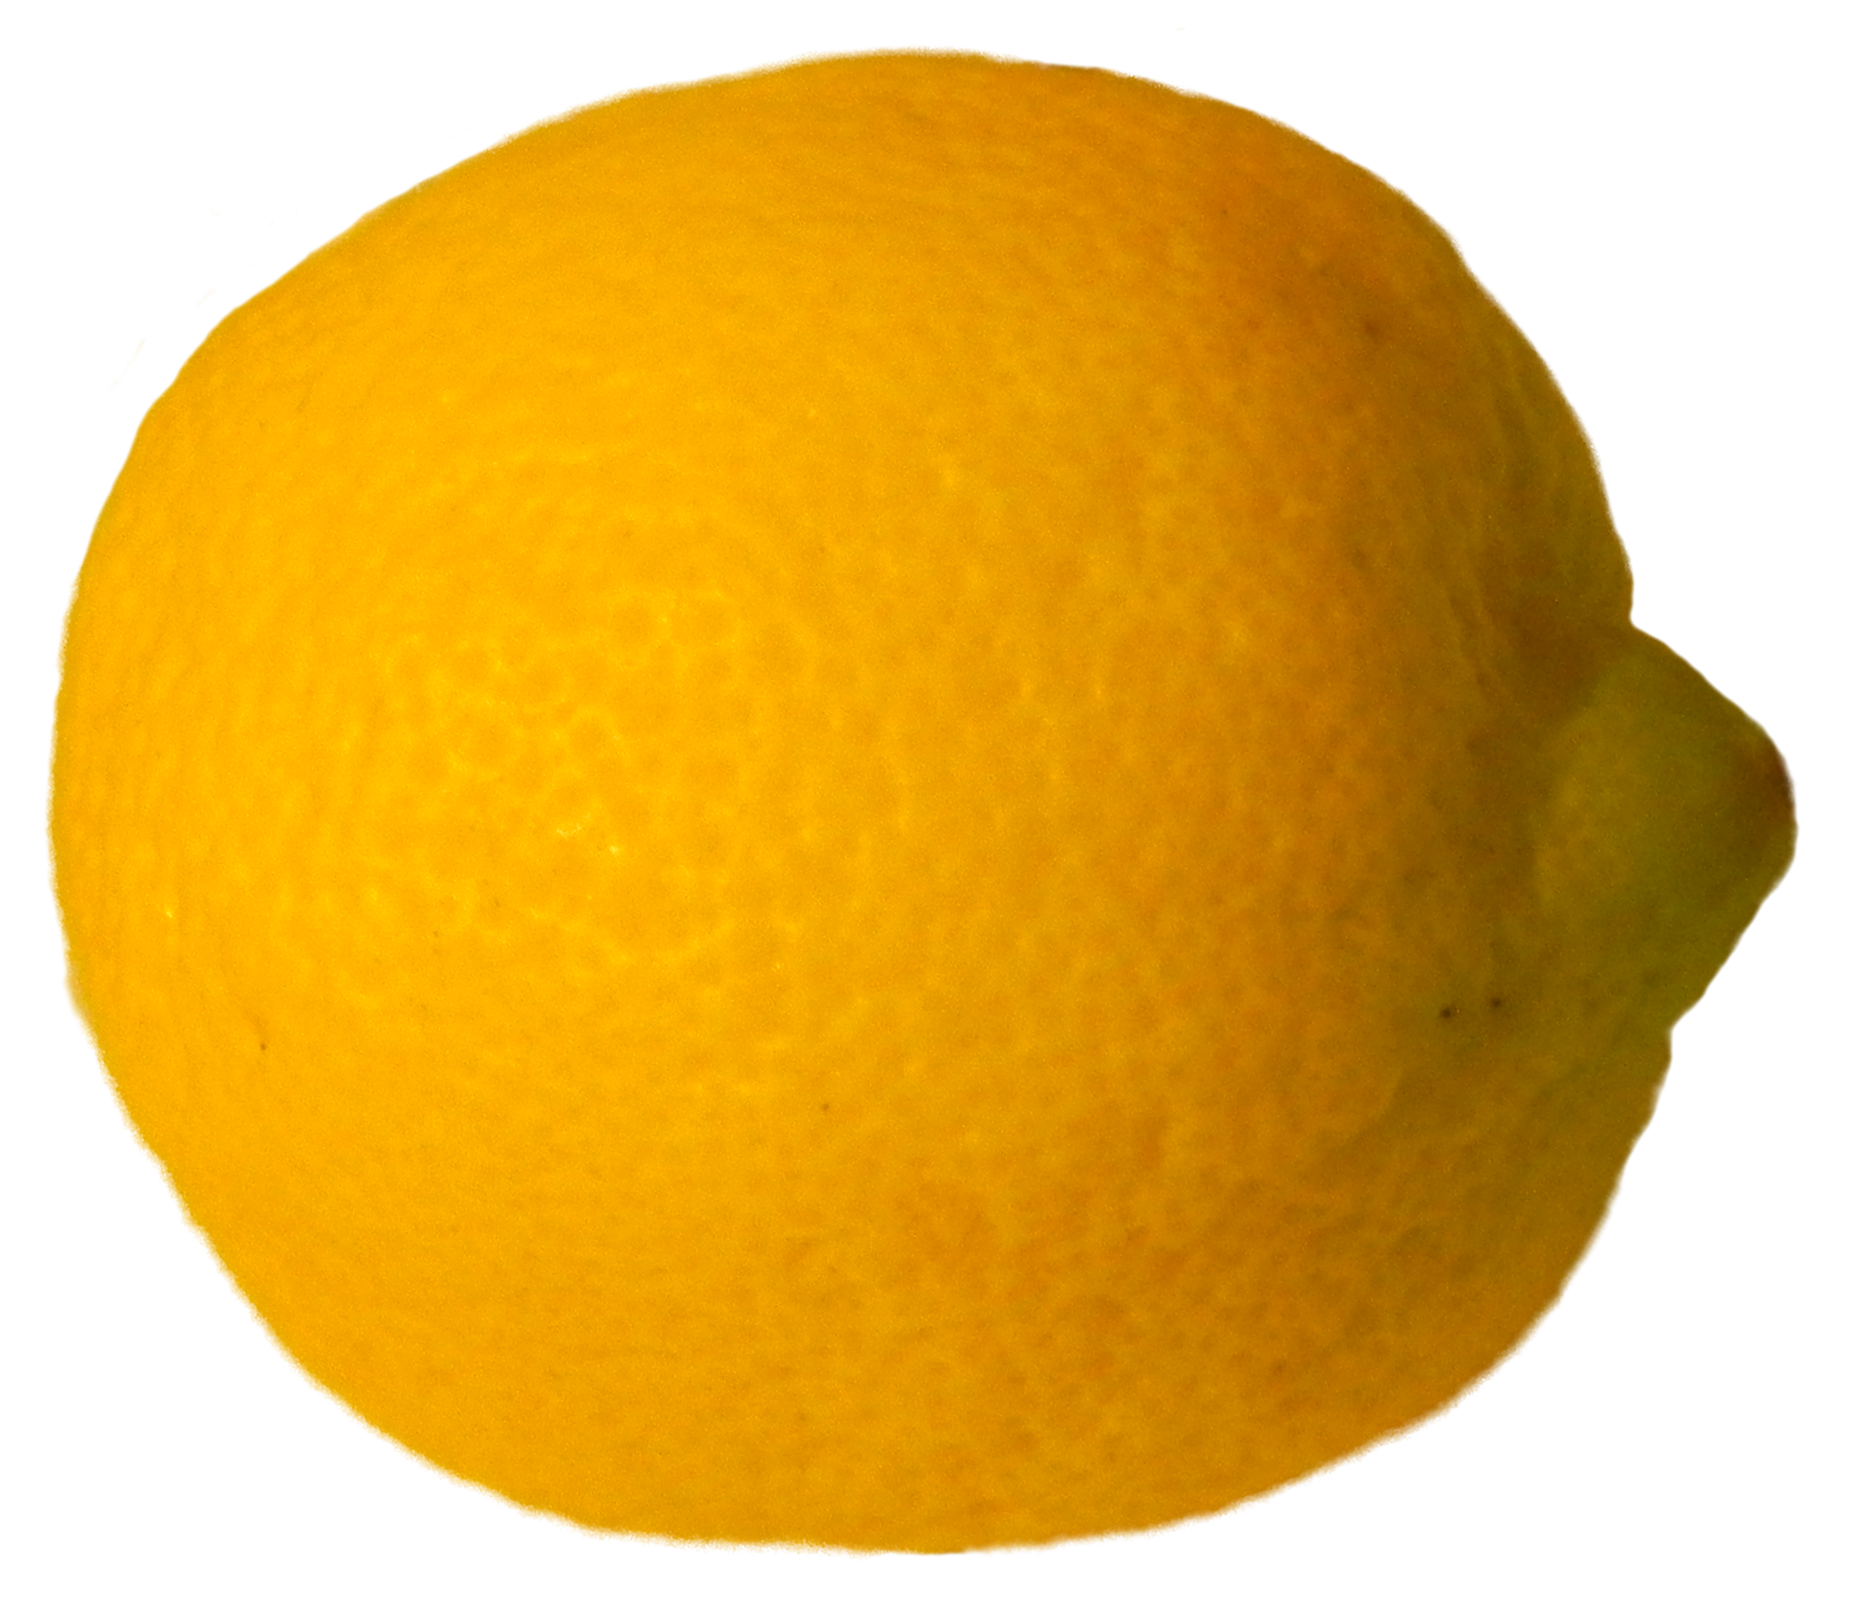 High Resolution Lemon Png Clipart image #38648